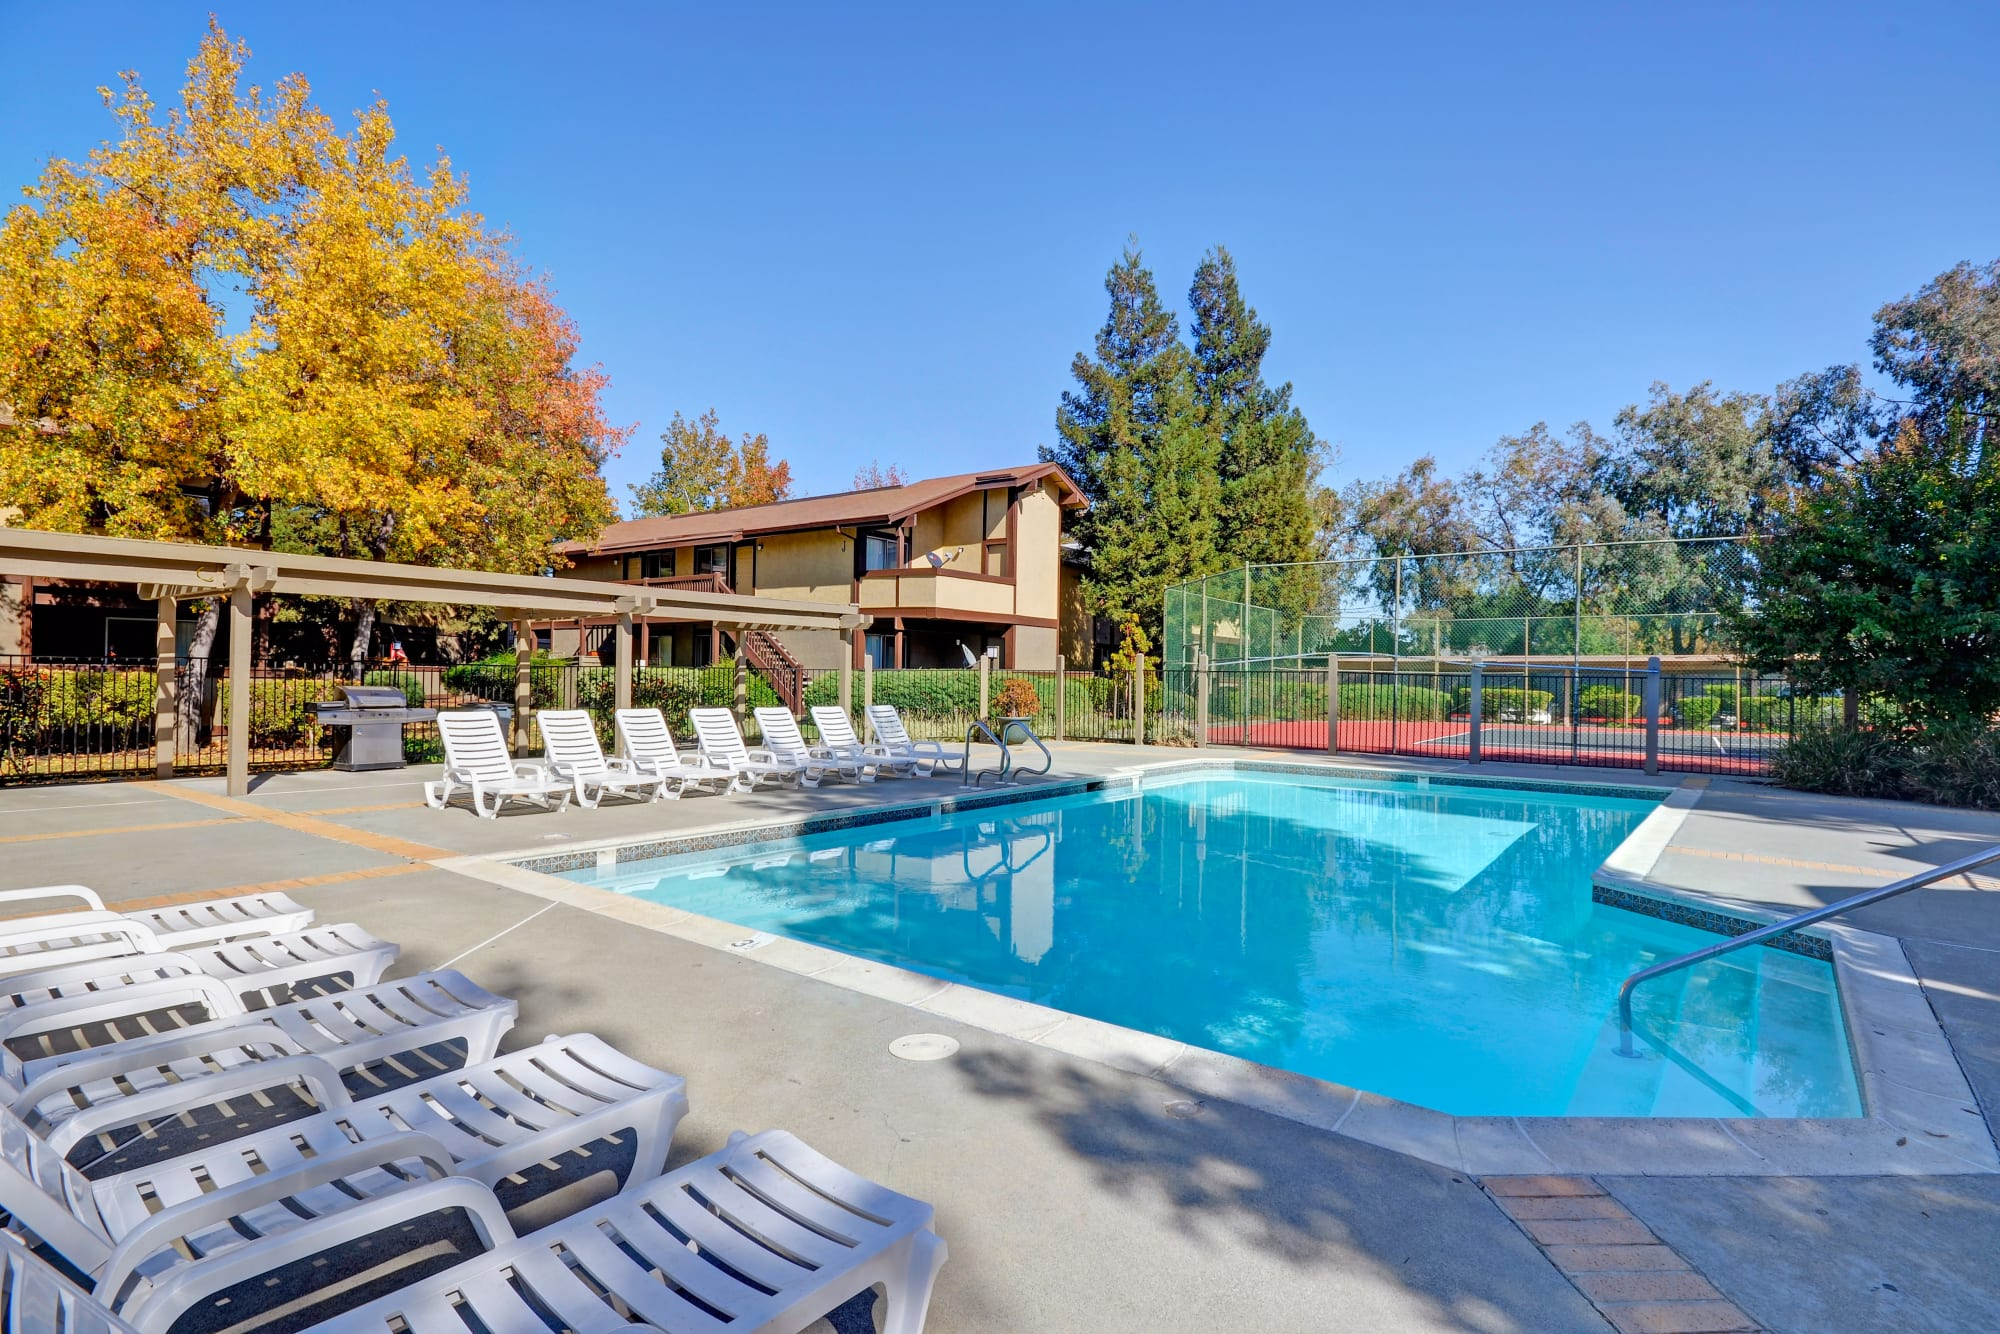 A gorgeous pool for those hot California days